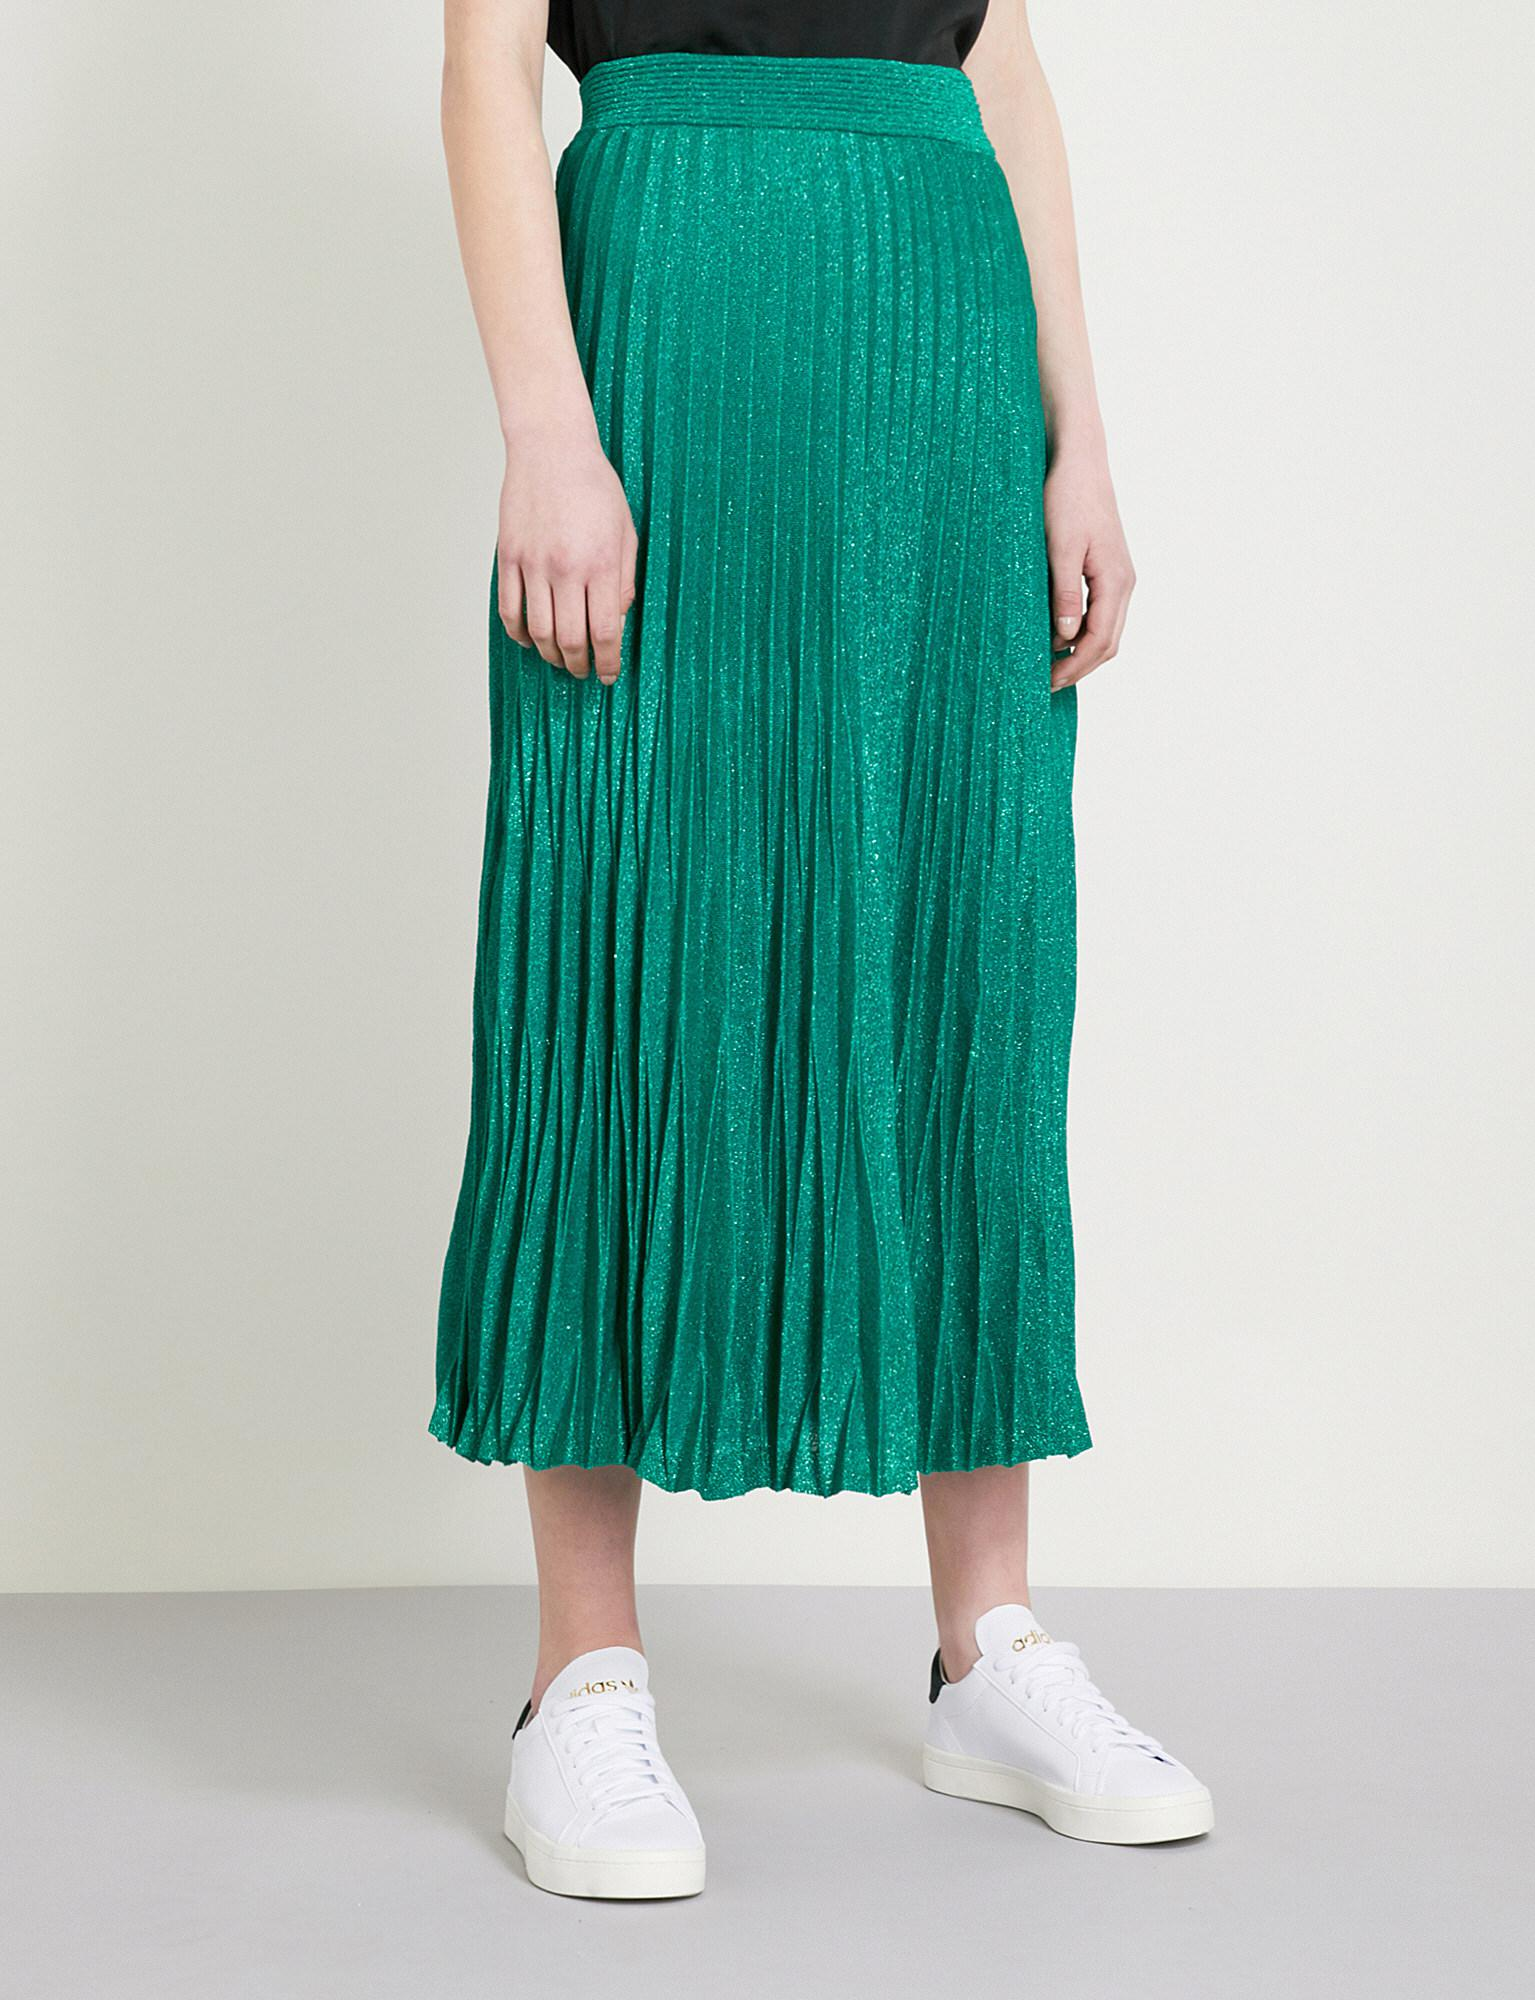 3c85daef51 Gallery. Previously sold at: Selfridges · Women's Metallic Skirts Women's Pleated  Skirts